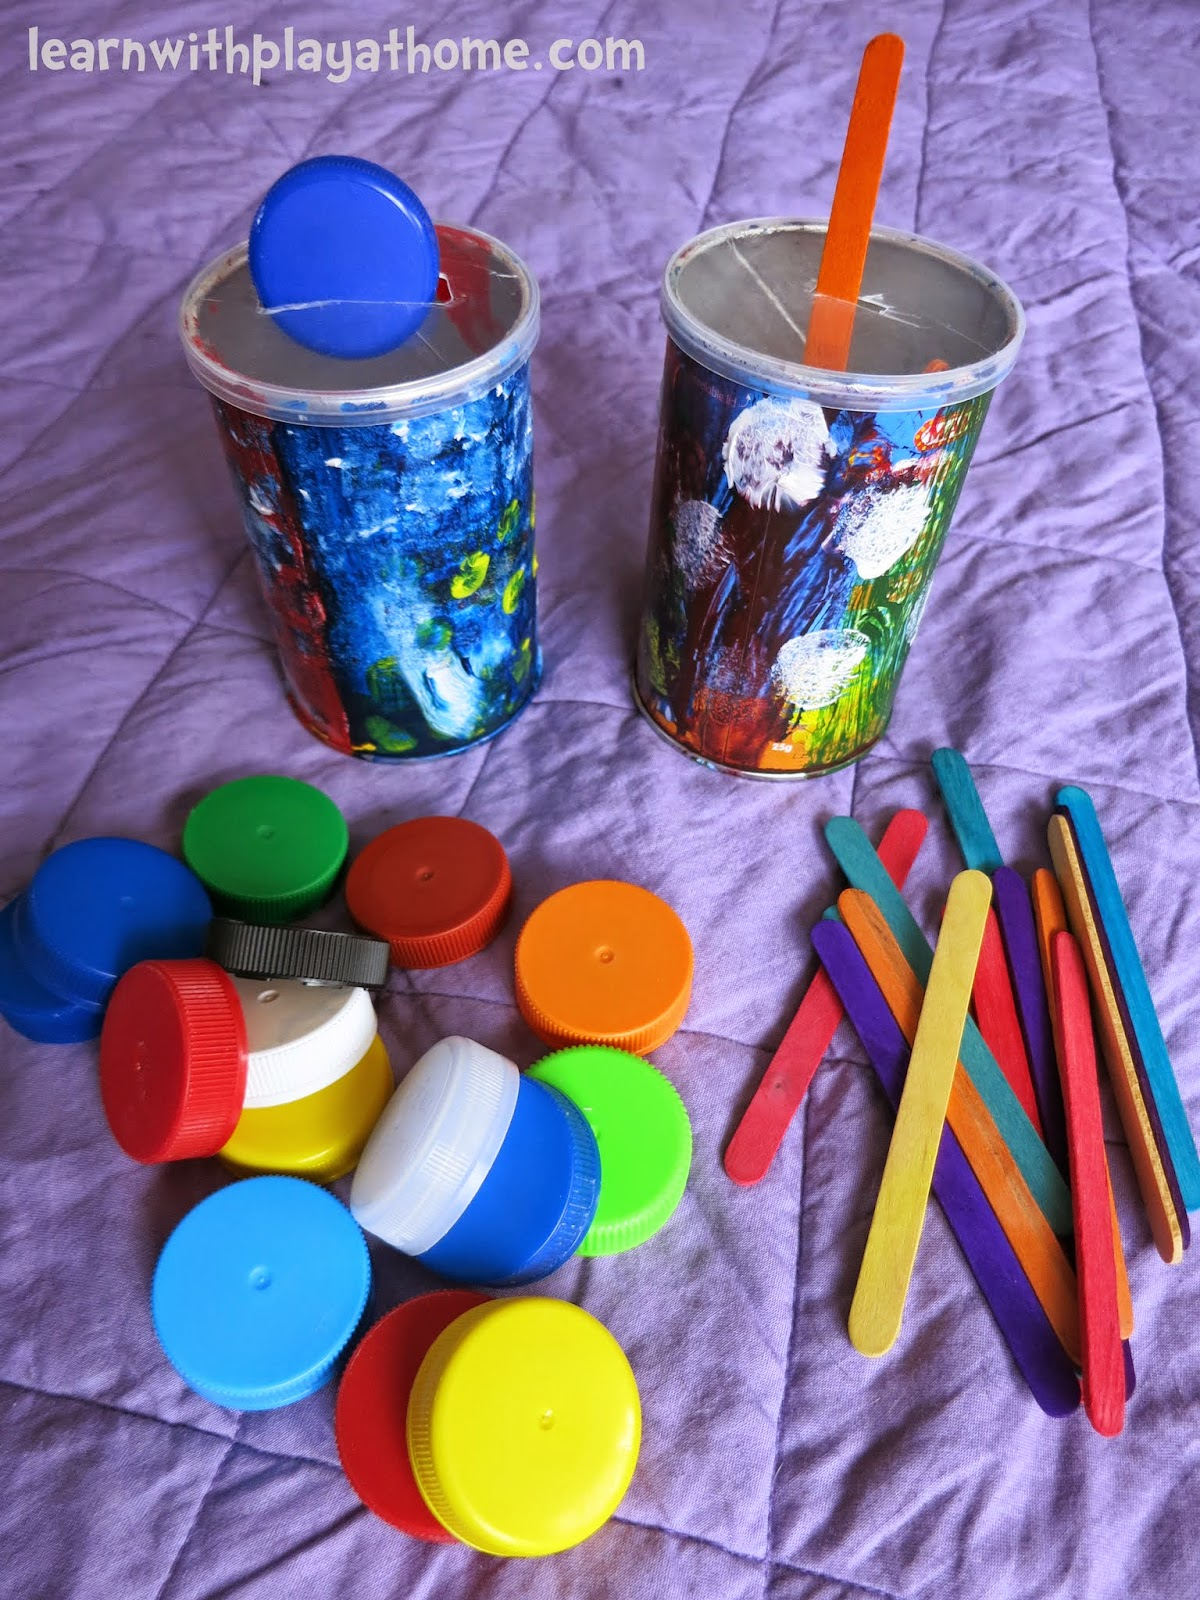 Learn with play at home diy fine motor activity for for Small motor activities for infants